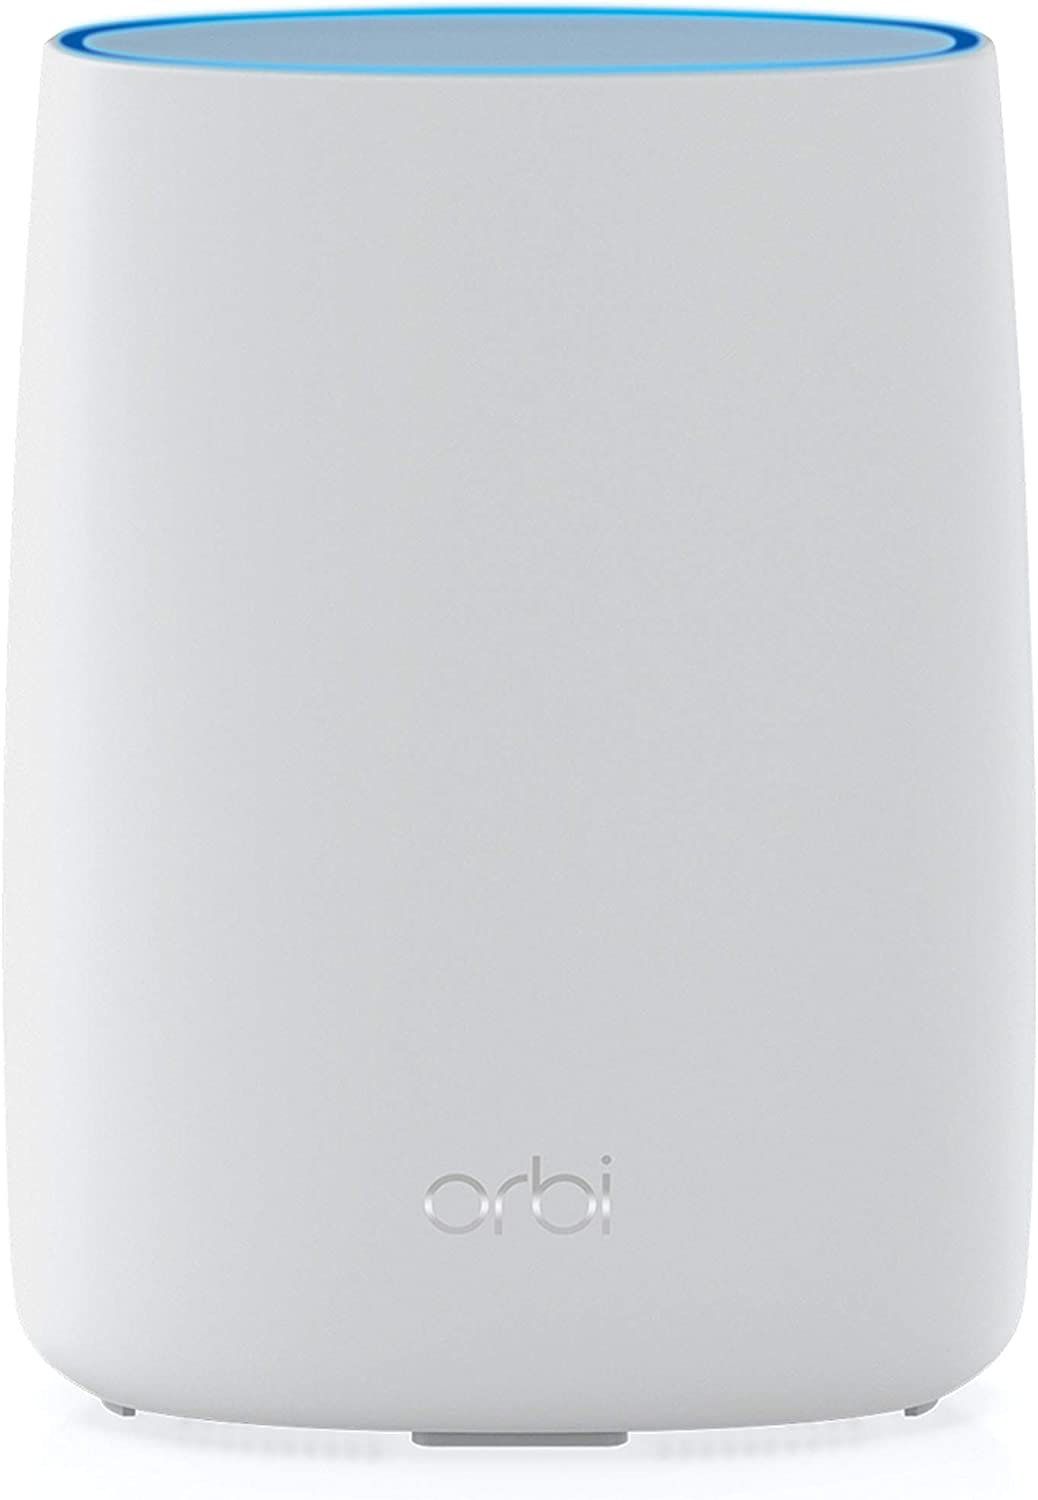 NETGEAR Orbi 4G LTE Mesh WiFi Router LBR20 Sale price Ranking TOP18 Home For Internet